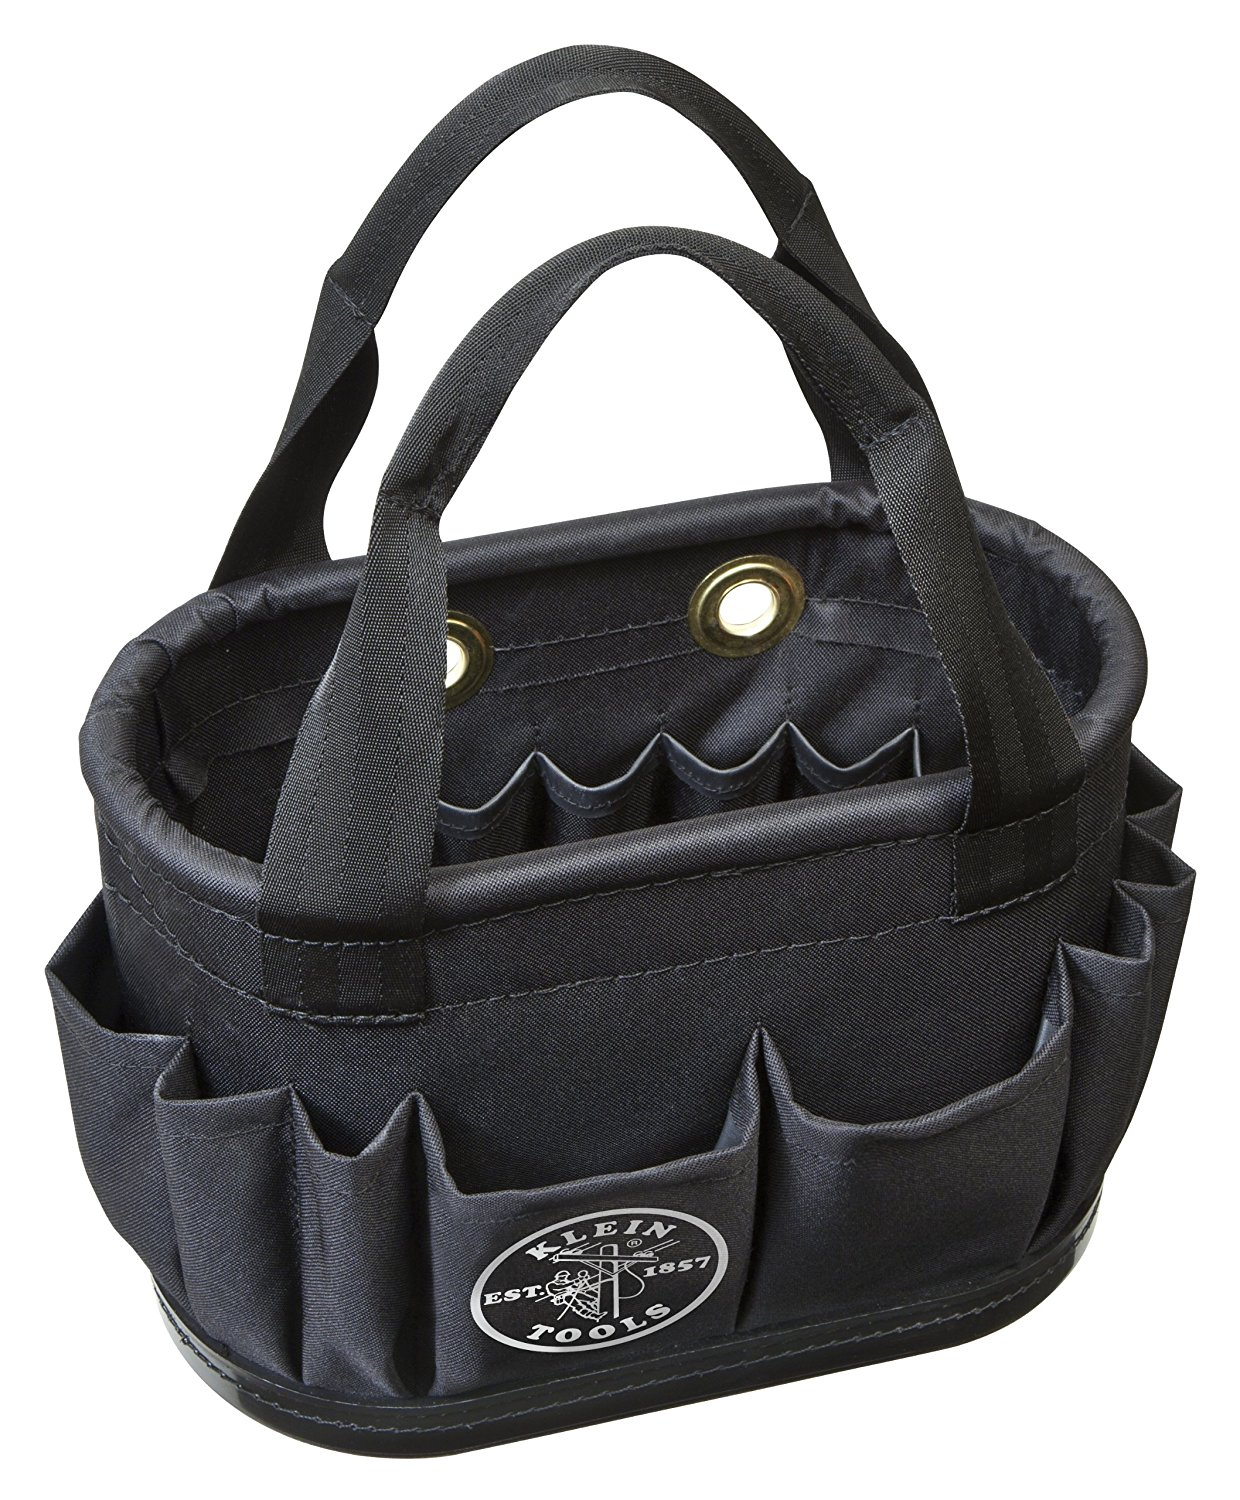 039cdd916e9 Best Lineman Tool Bag - Reviews and Comparisons | Best Tool Belt